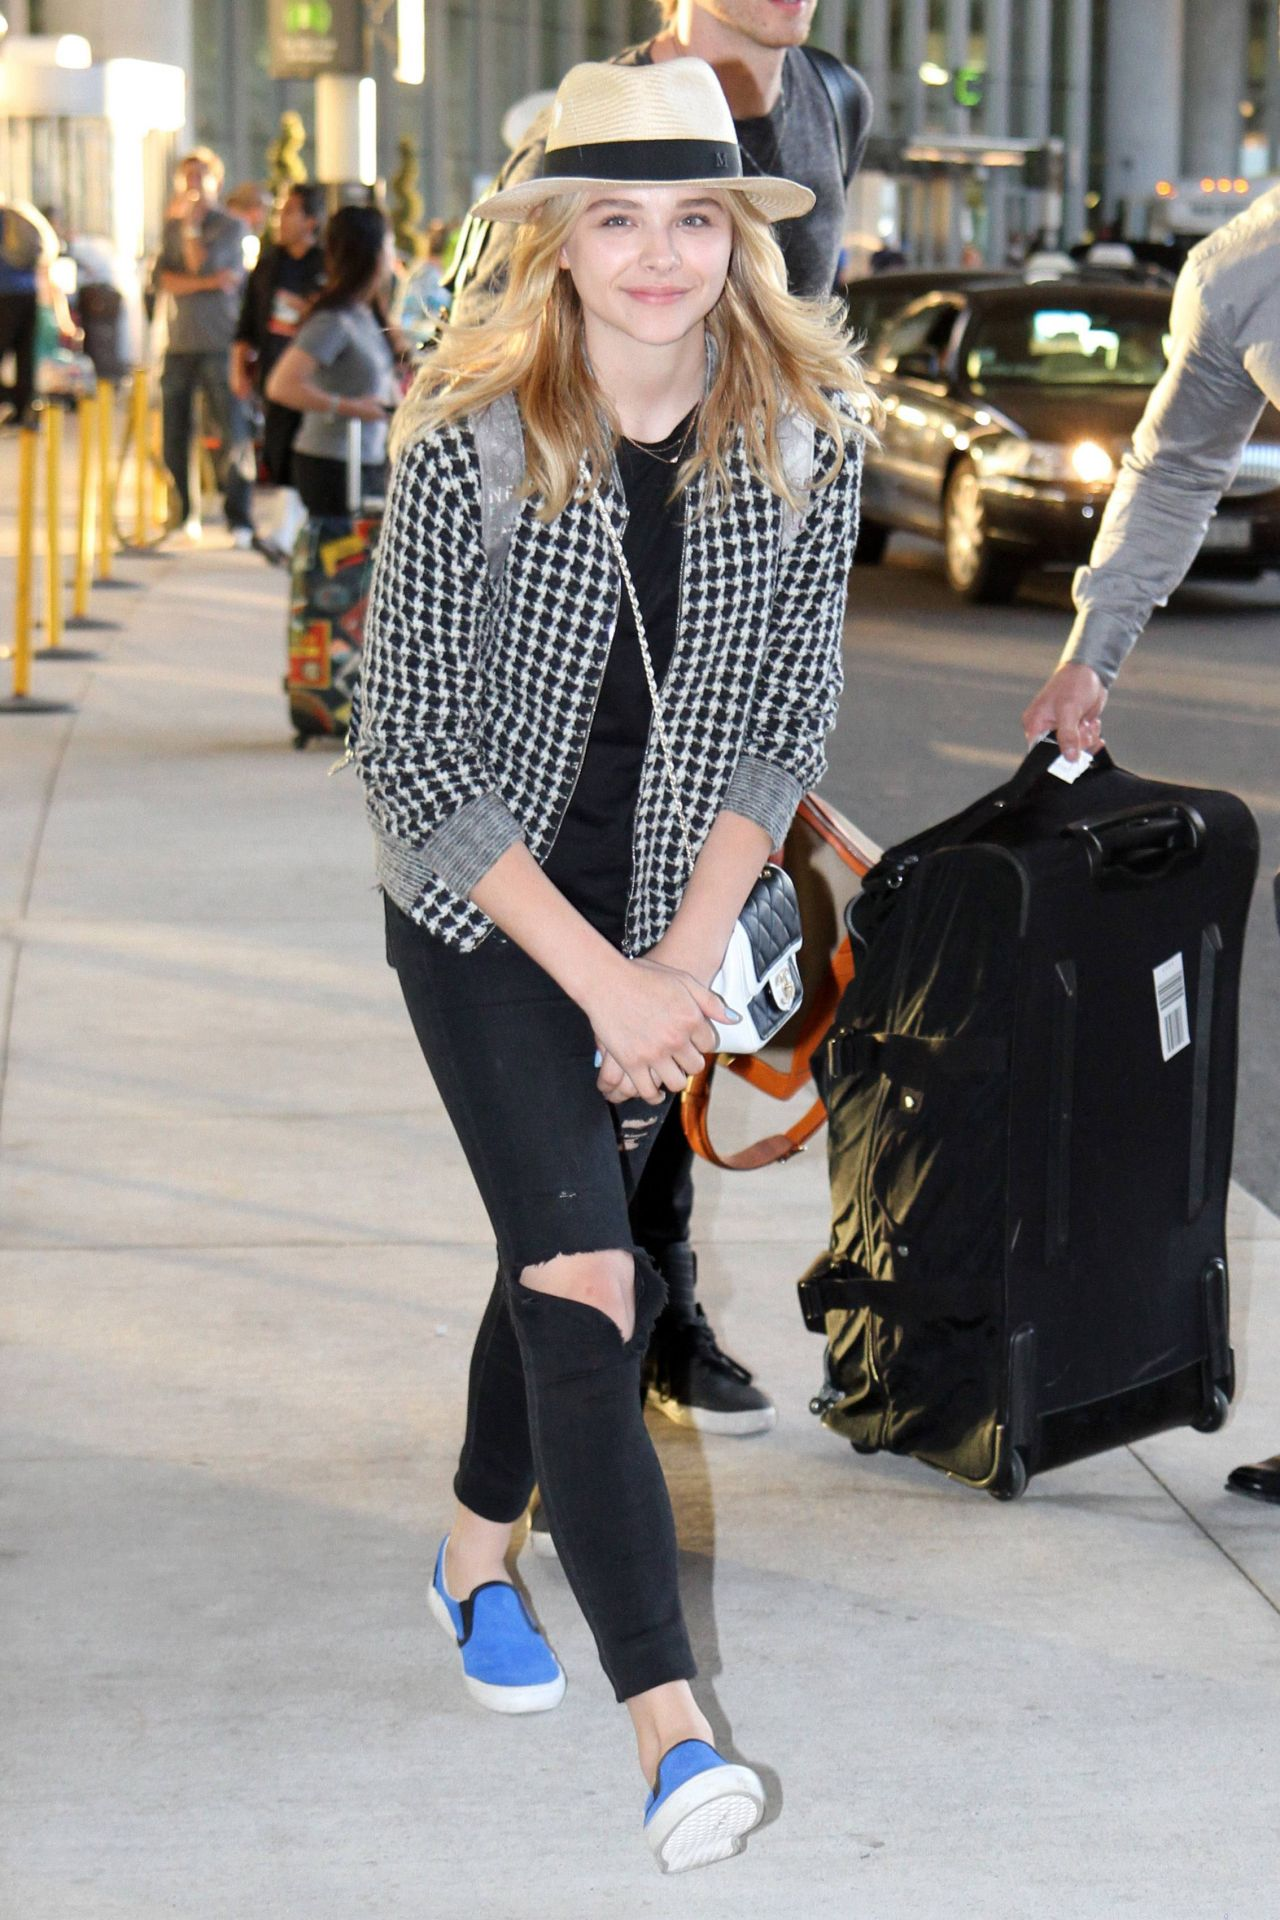 Chloe Moretz Arriving at Pearson International Airport in Toronto - June 2014